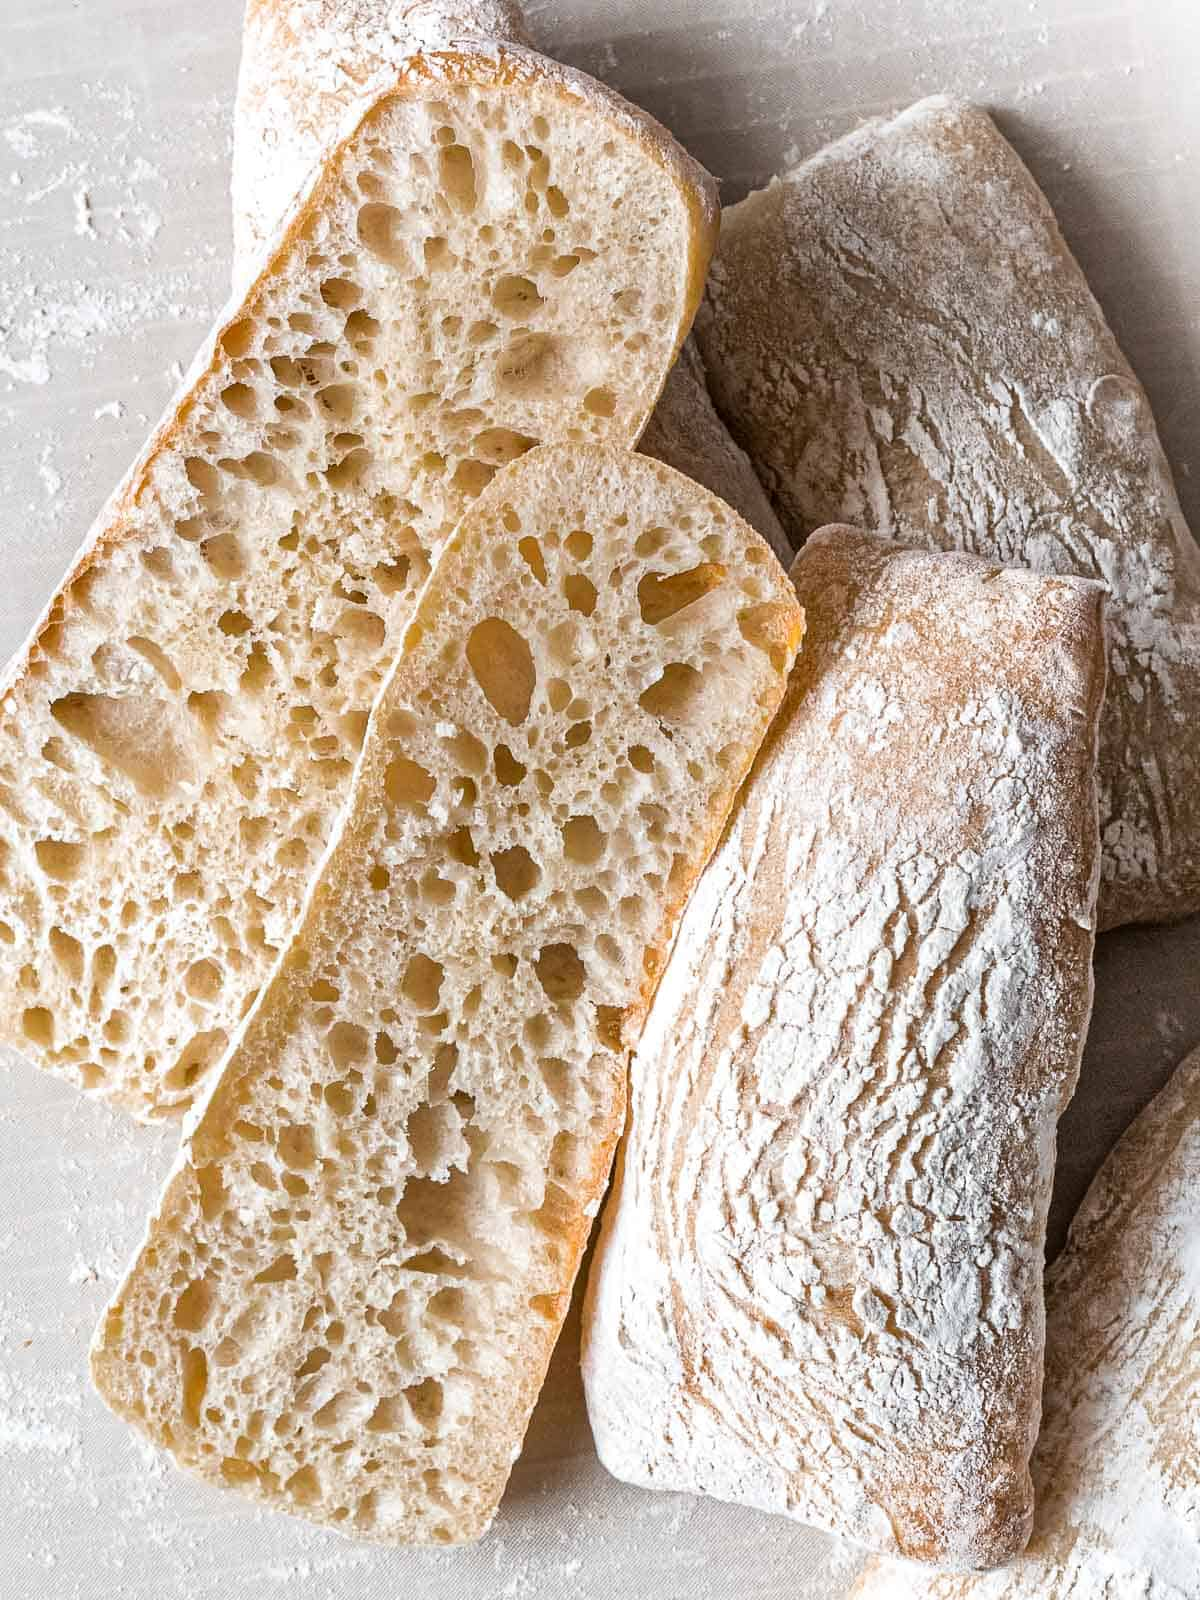 Sourdough ciabatta sliced open with large holes to show open crumb and proper gluten development laying in a pile of more loaves.